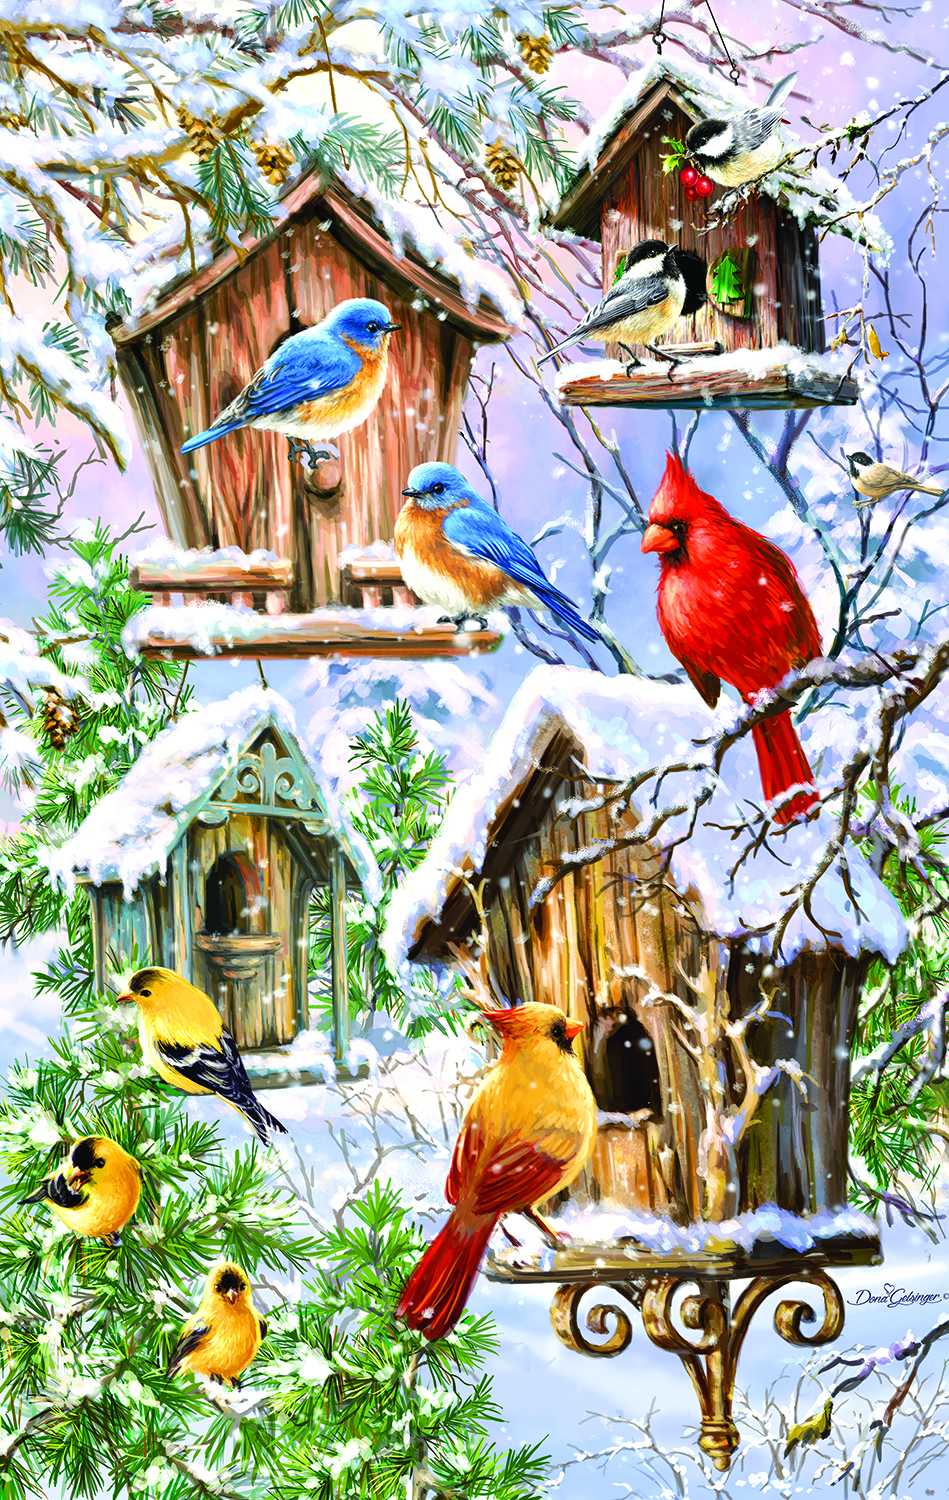 Snow Birds 550 Pc Jigsaw Puzzle by SunsOut Inc.